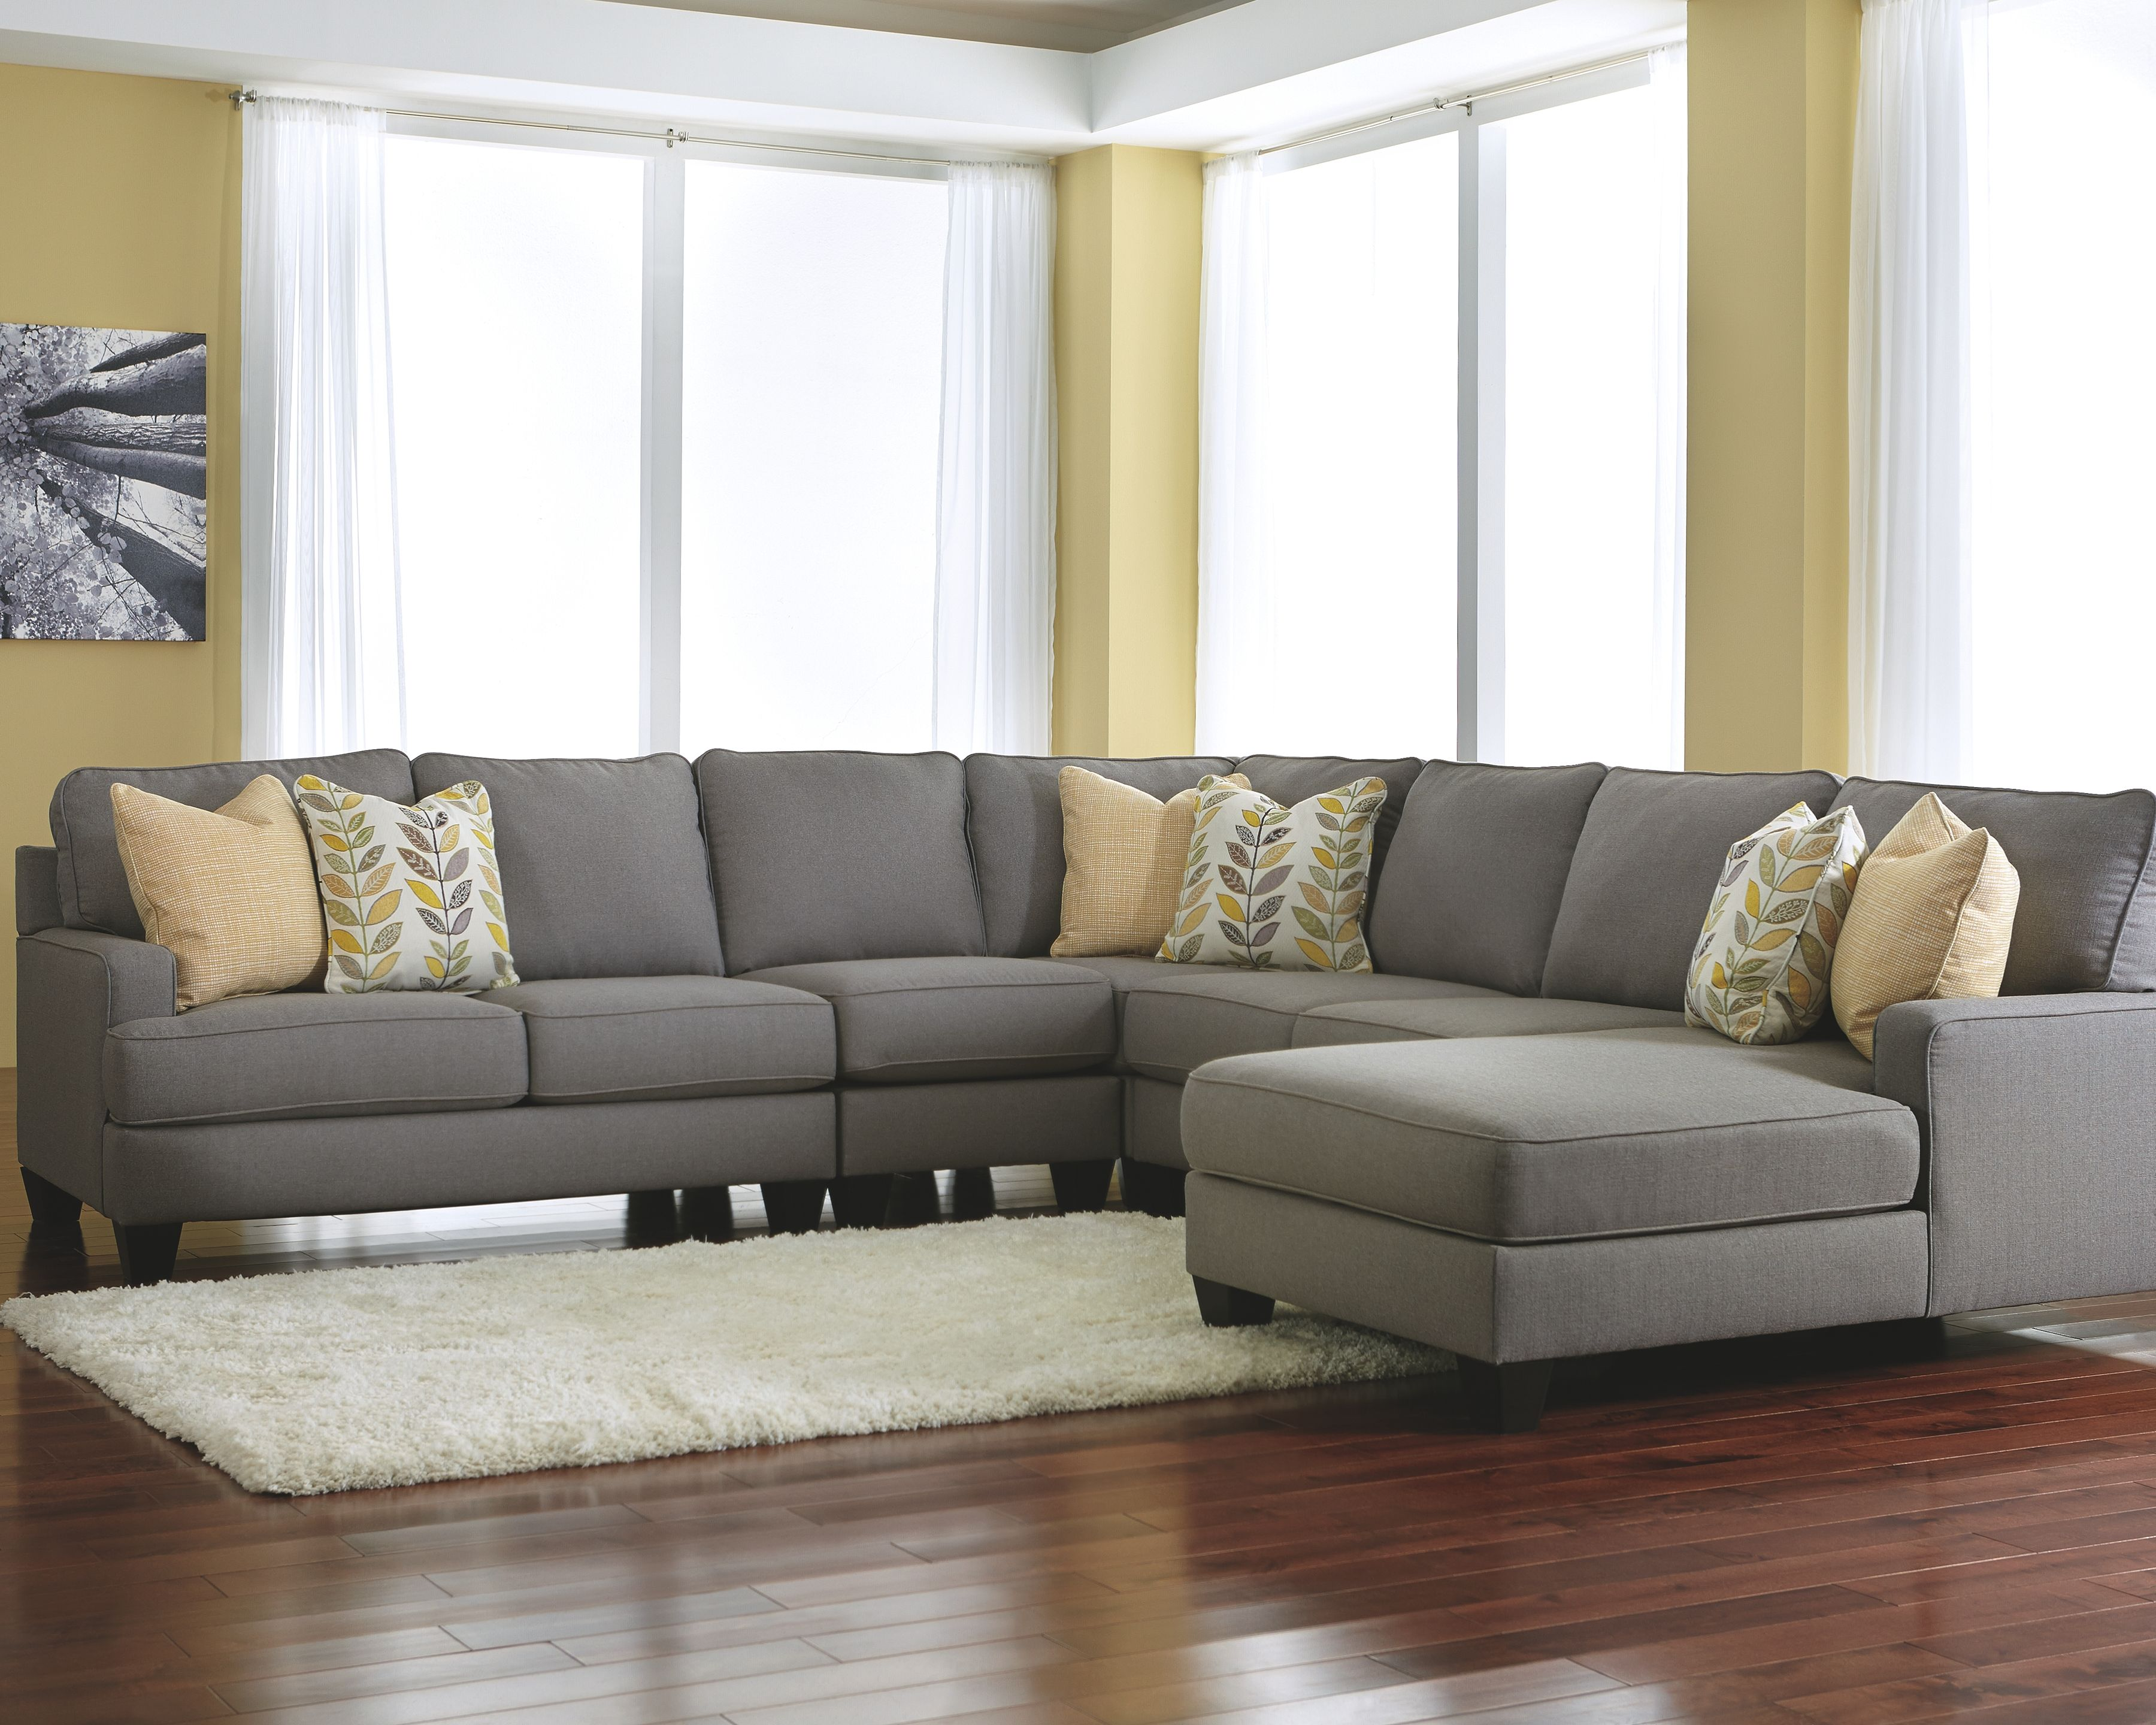 Best Chamberly 5 Piece Sectional With Chaise Alloy In 2020 640 x 480